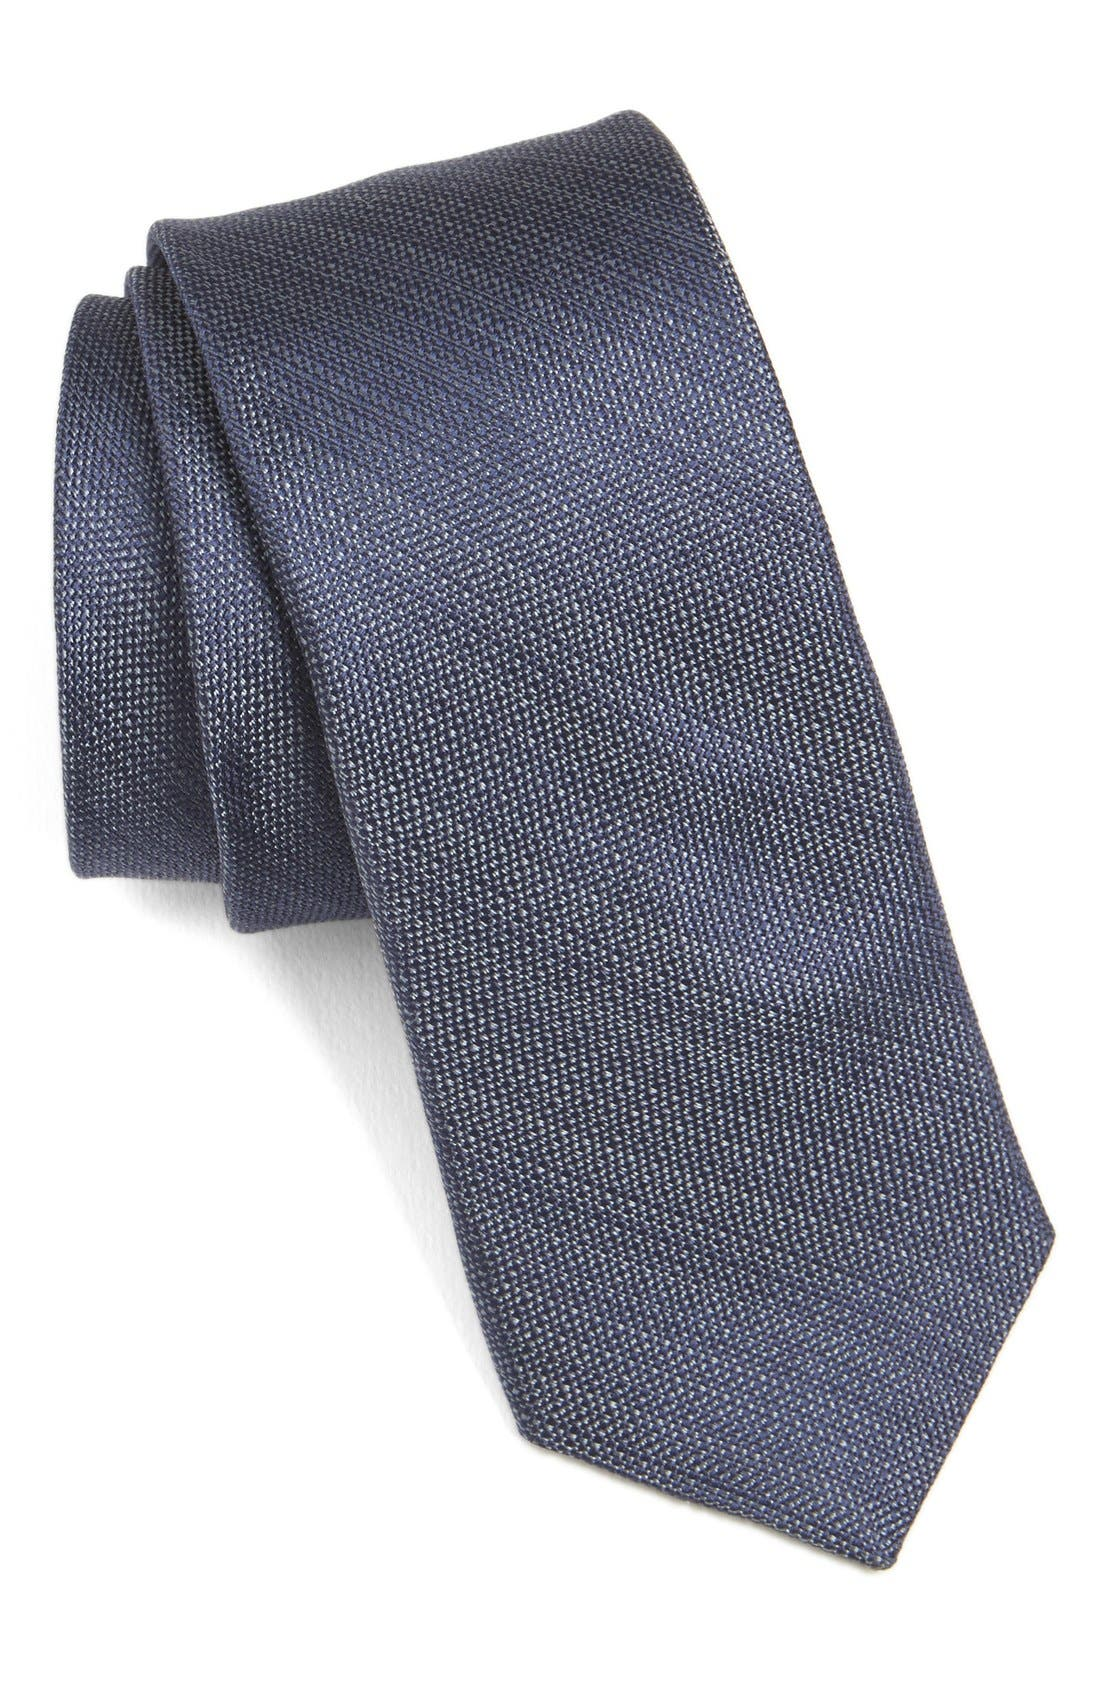 Solid Skinny Silk Tie,                         Main,                         color, Navy/ Grey